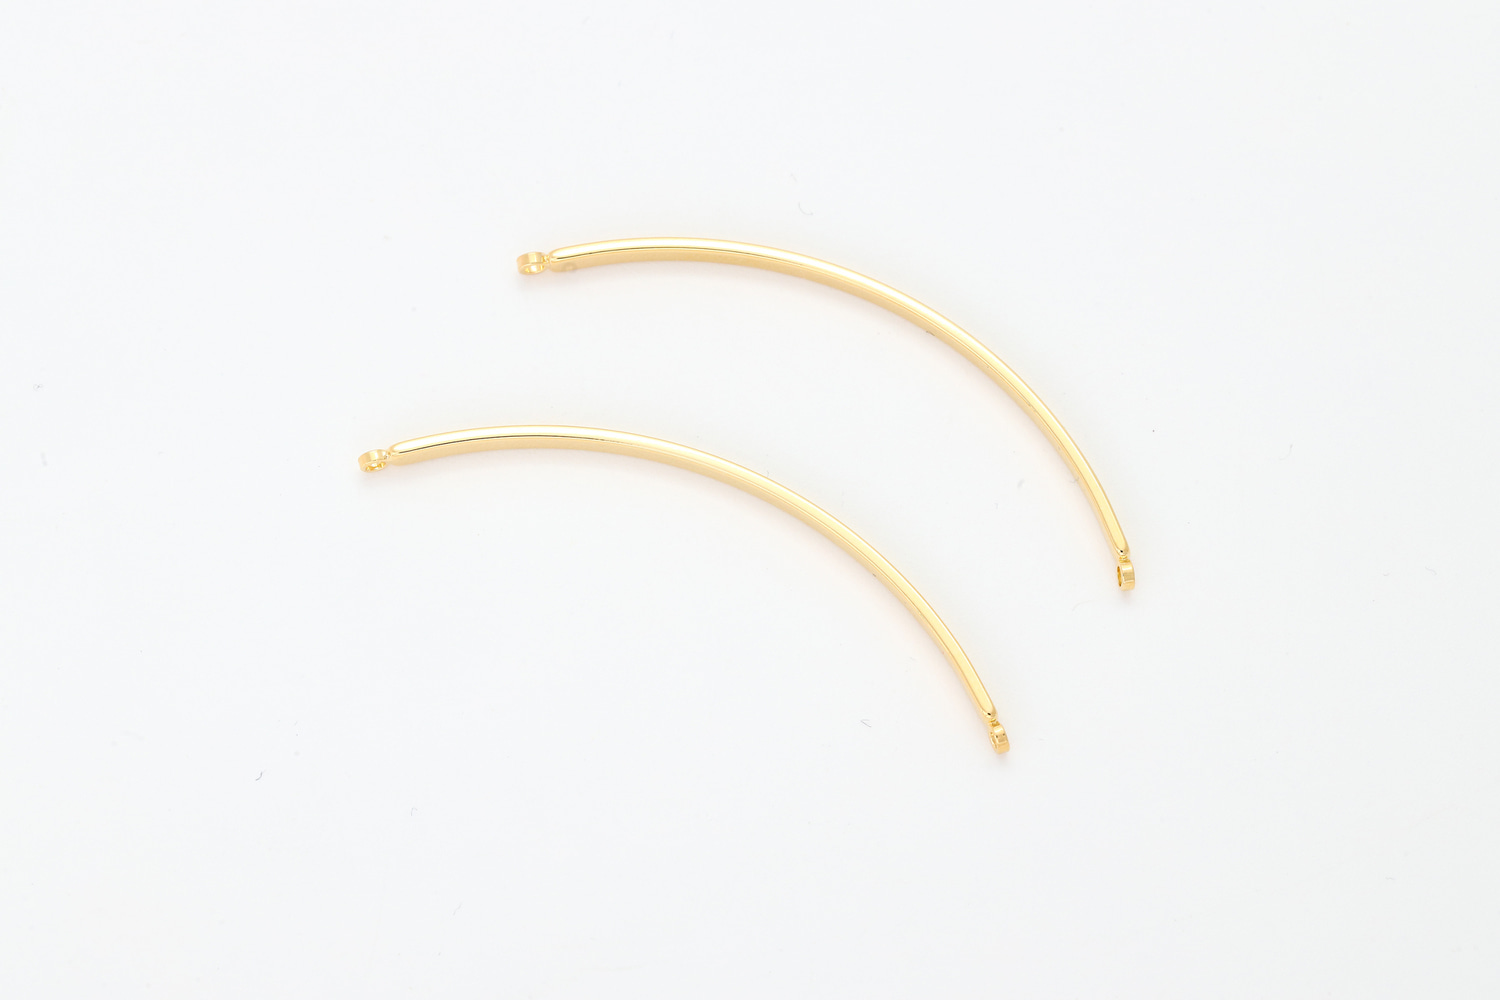 [C24-G1] Curved bar w/ 2 loops, Brass, Nickel free, 46x2mm, Bangle, Bracelet, Stamping blank, Not easily tarnish, 2 pcs